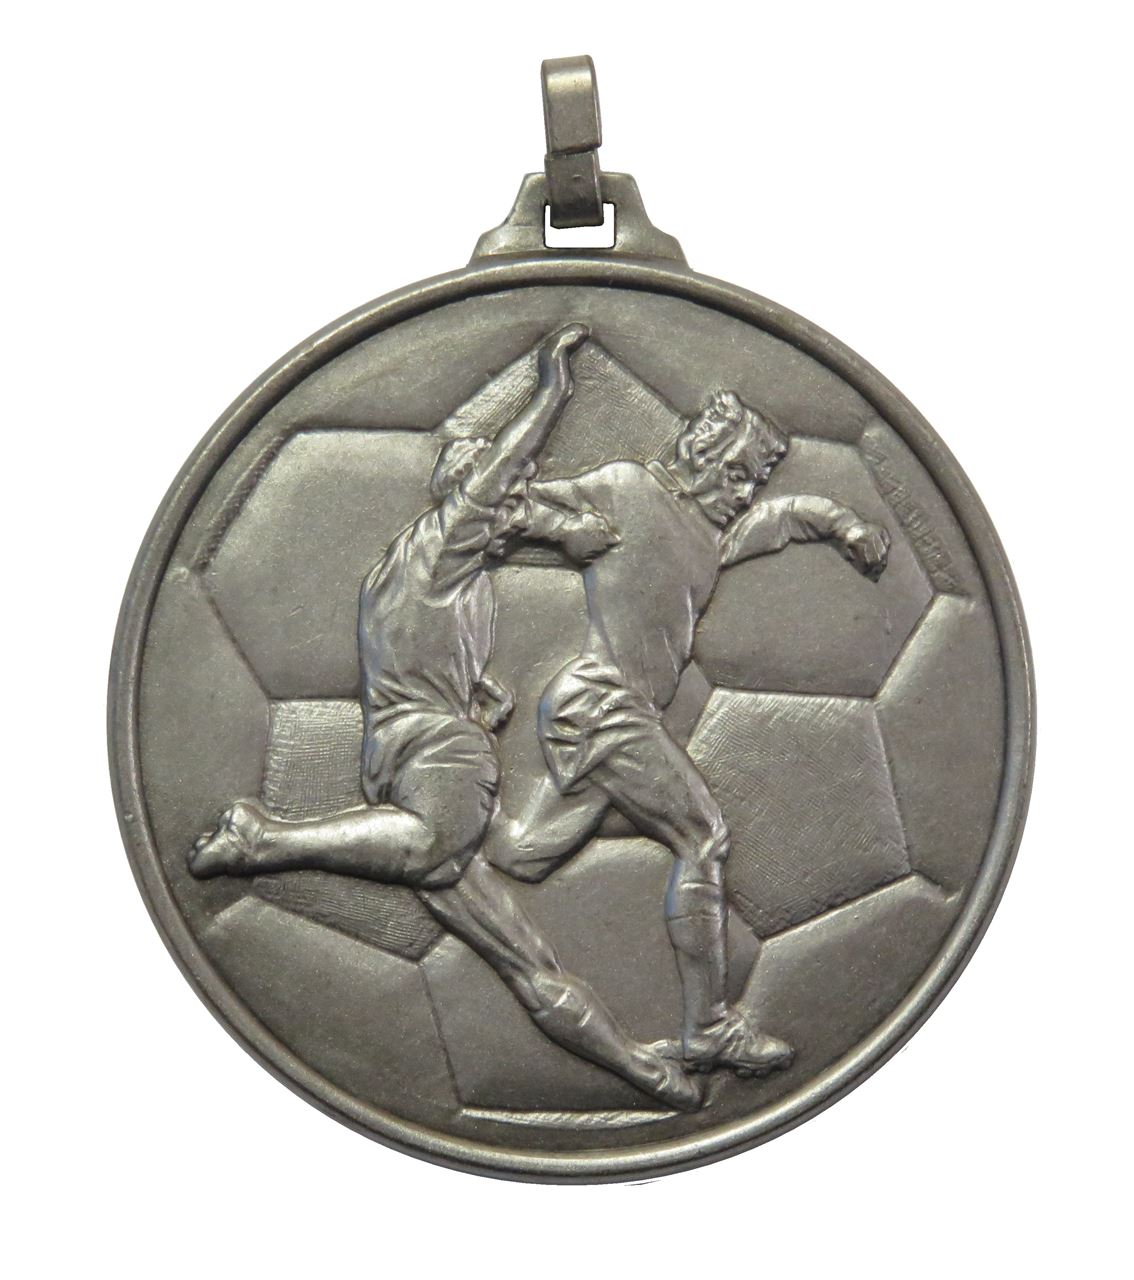 Silver Economy Football Medal (size: 52mm) - 176E